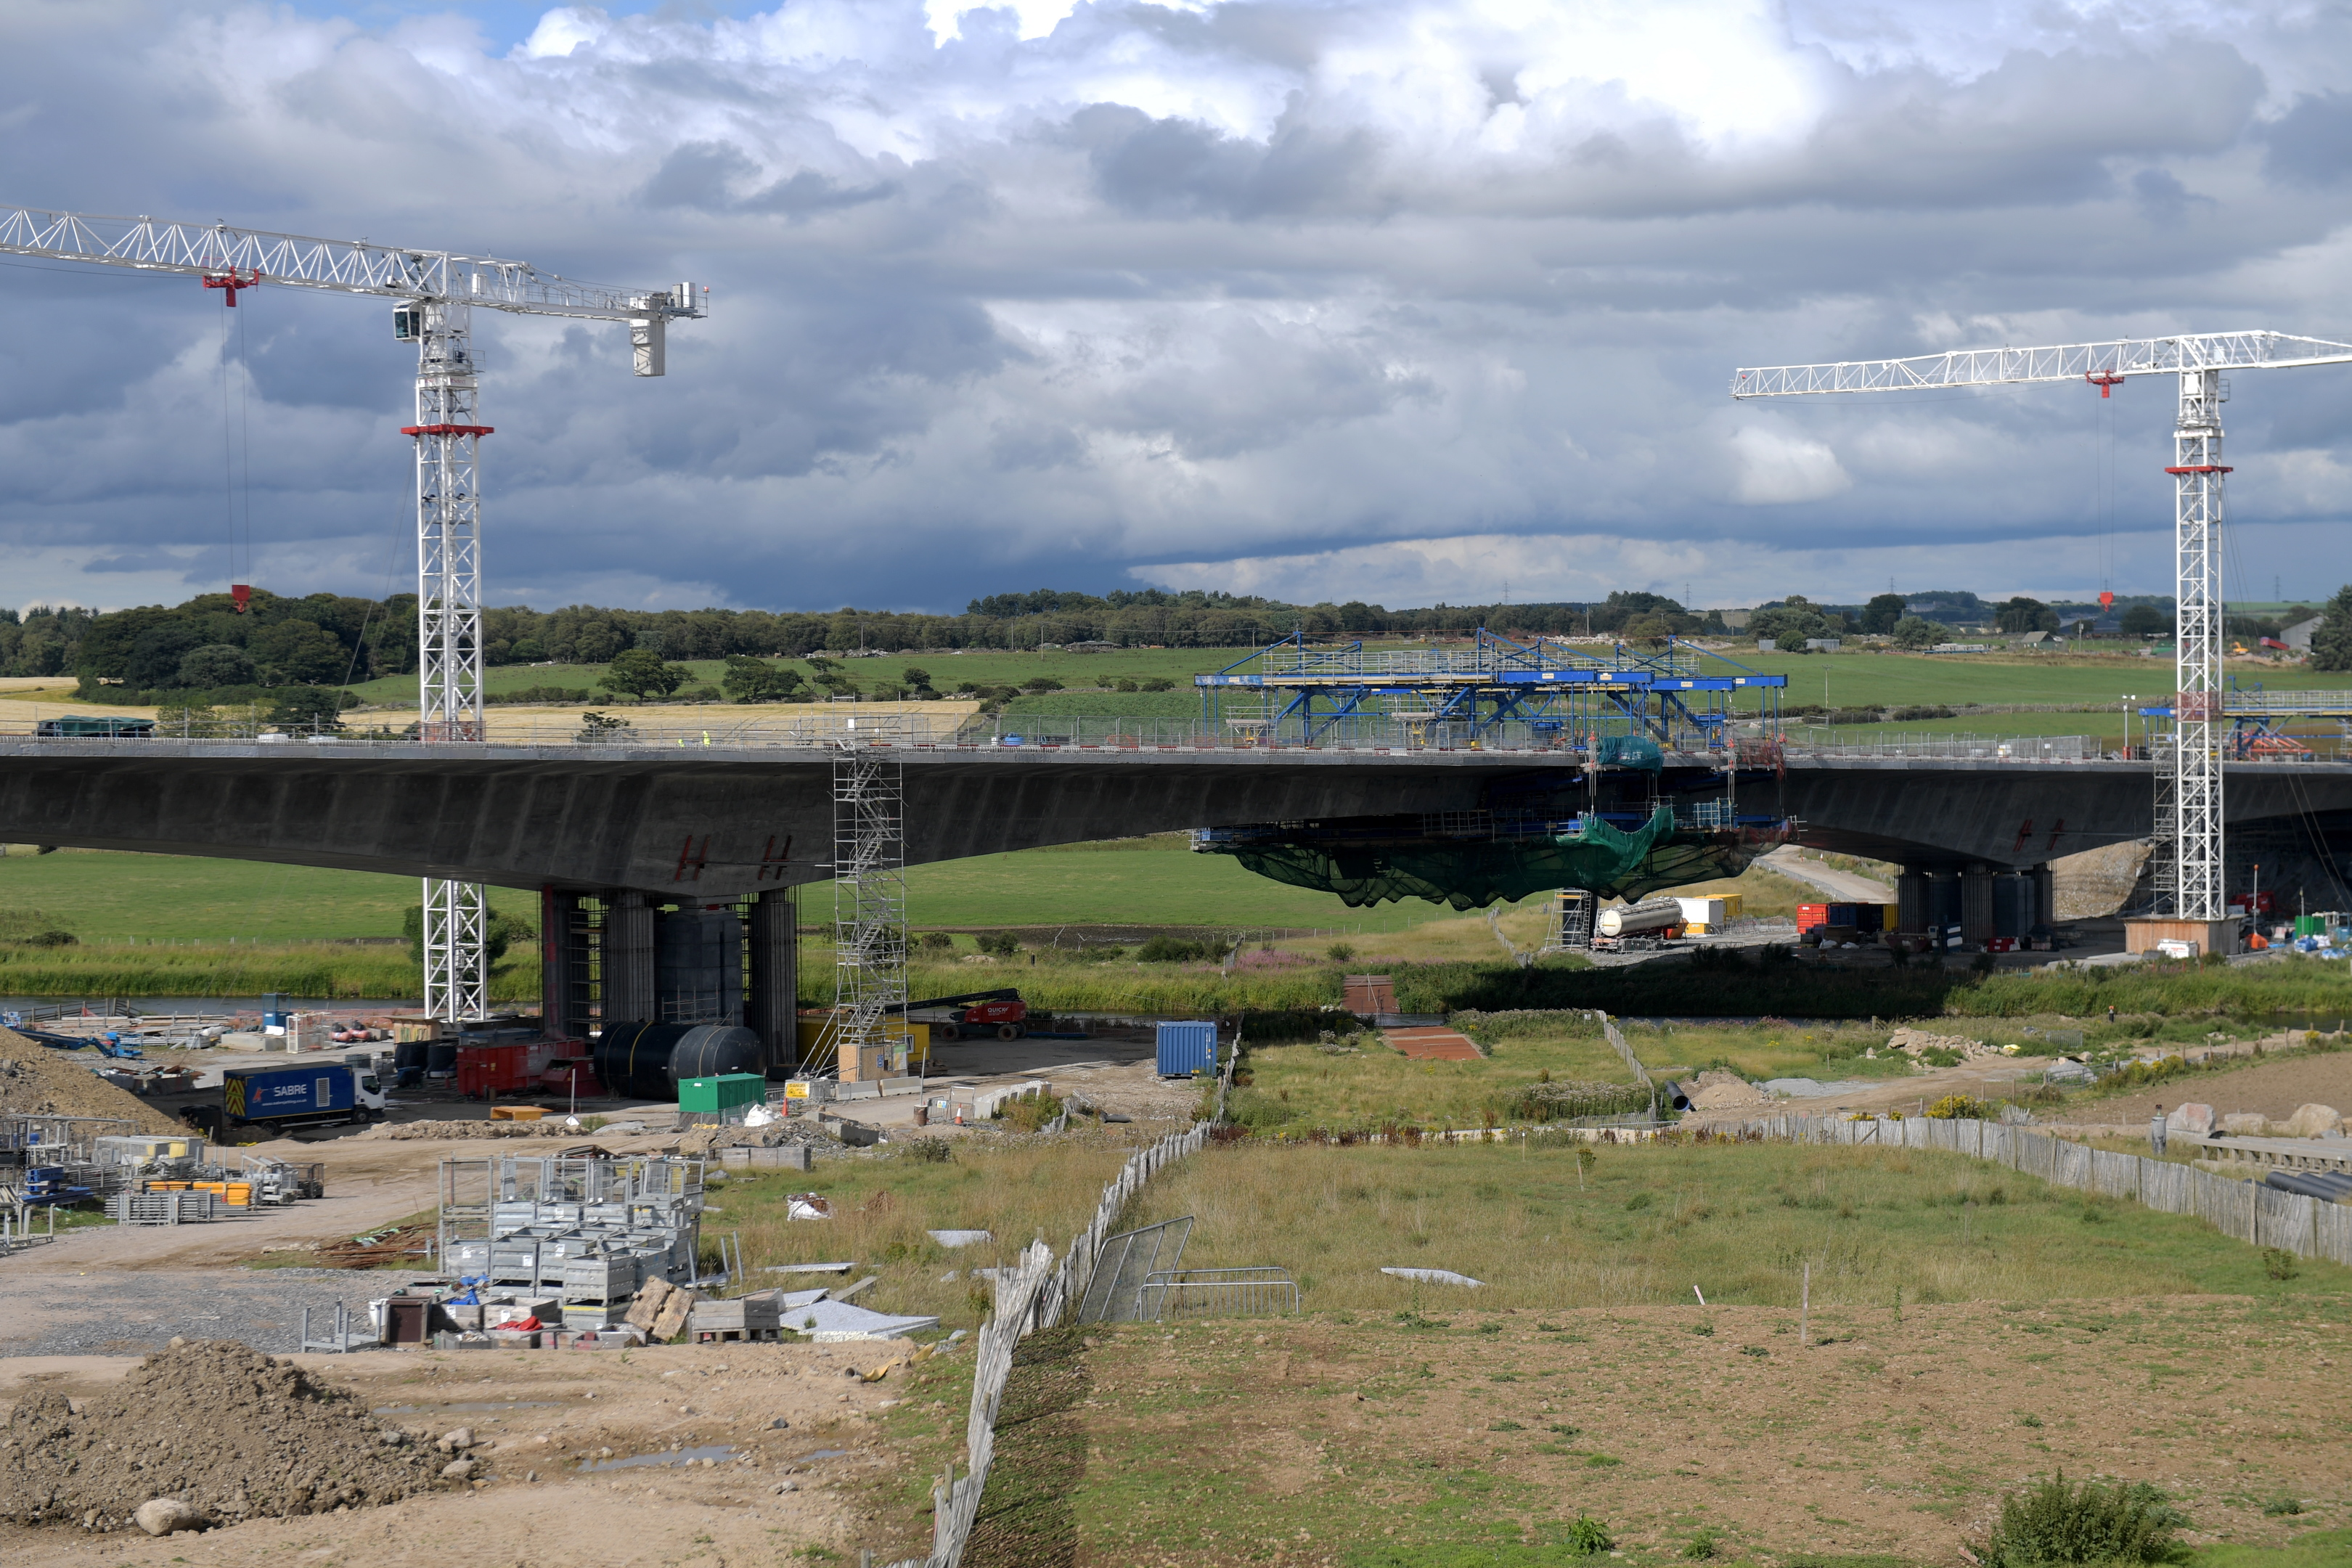 Repairs will be carried out on the AWPR bridge over the River Don at Dyce (Picture: Kath Flannery)